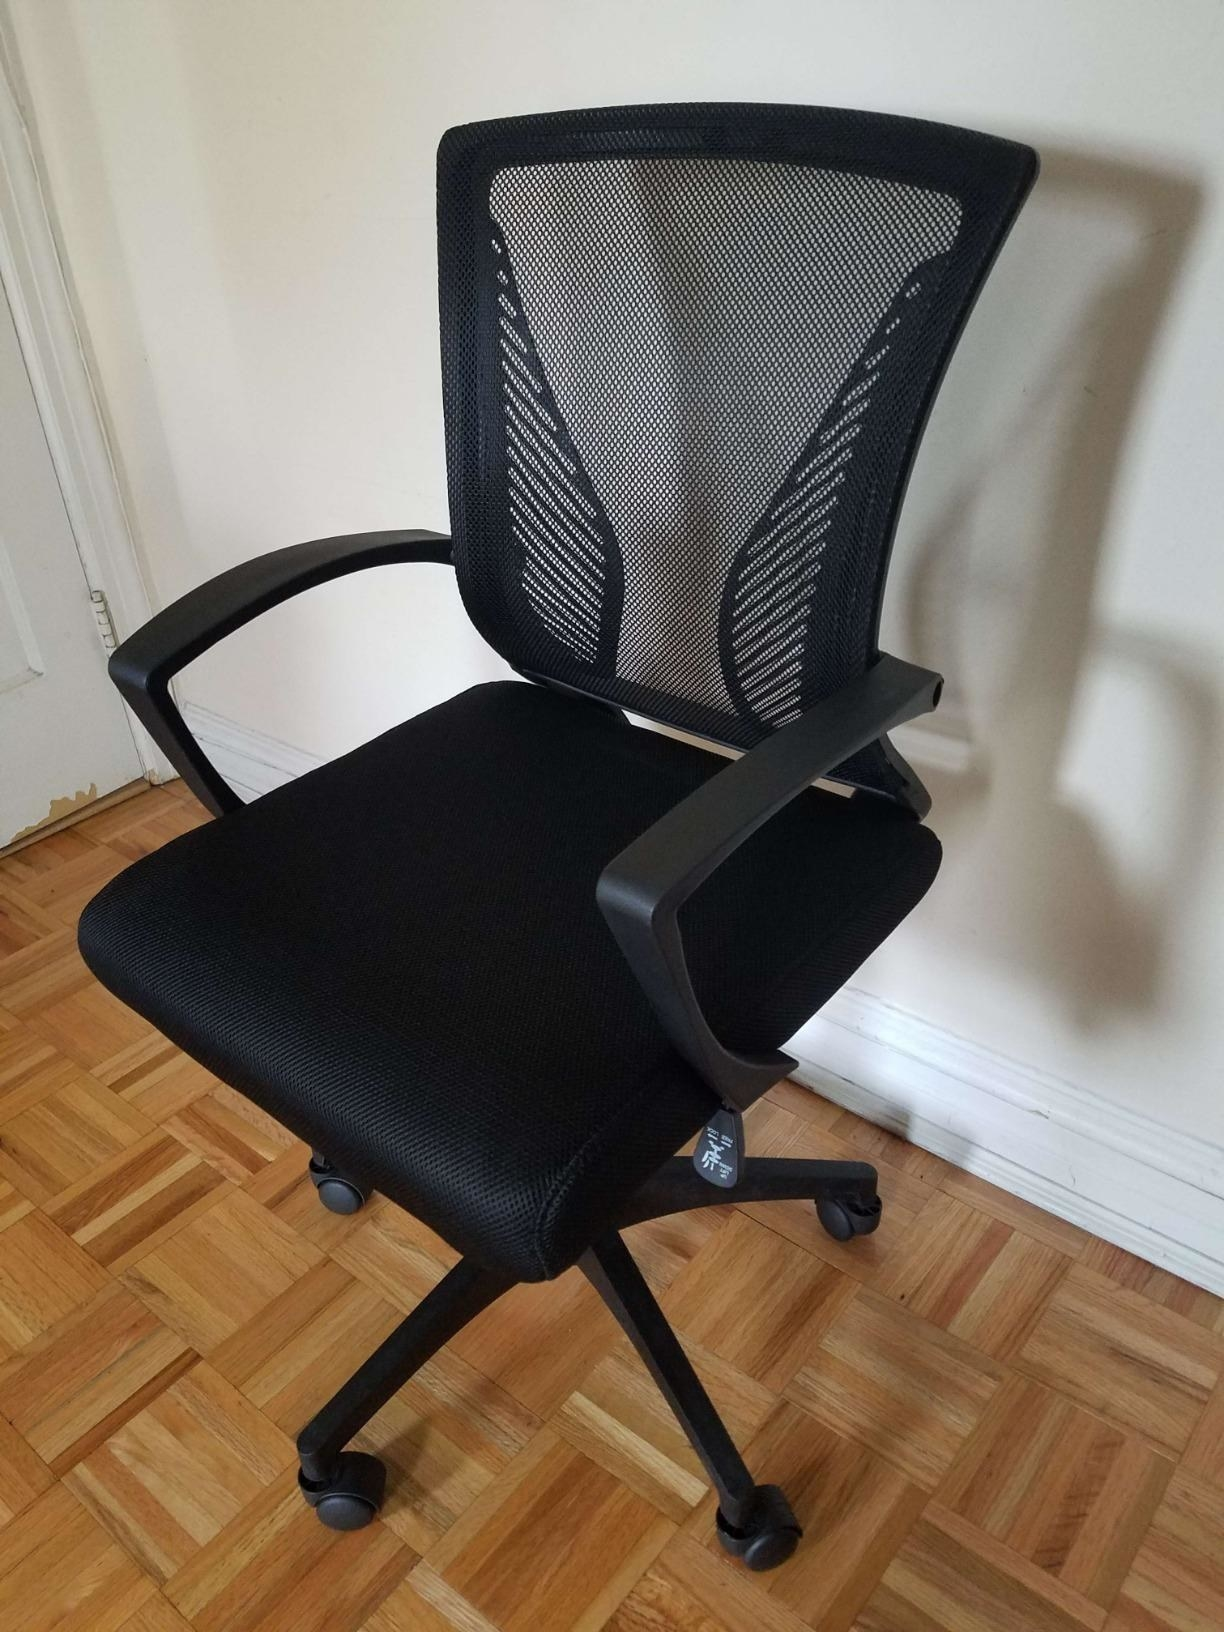 reviewer's task chair in black